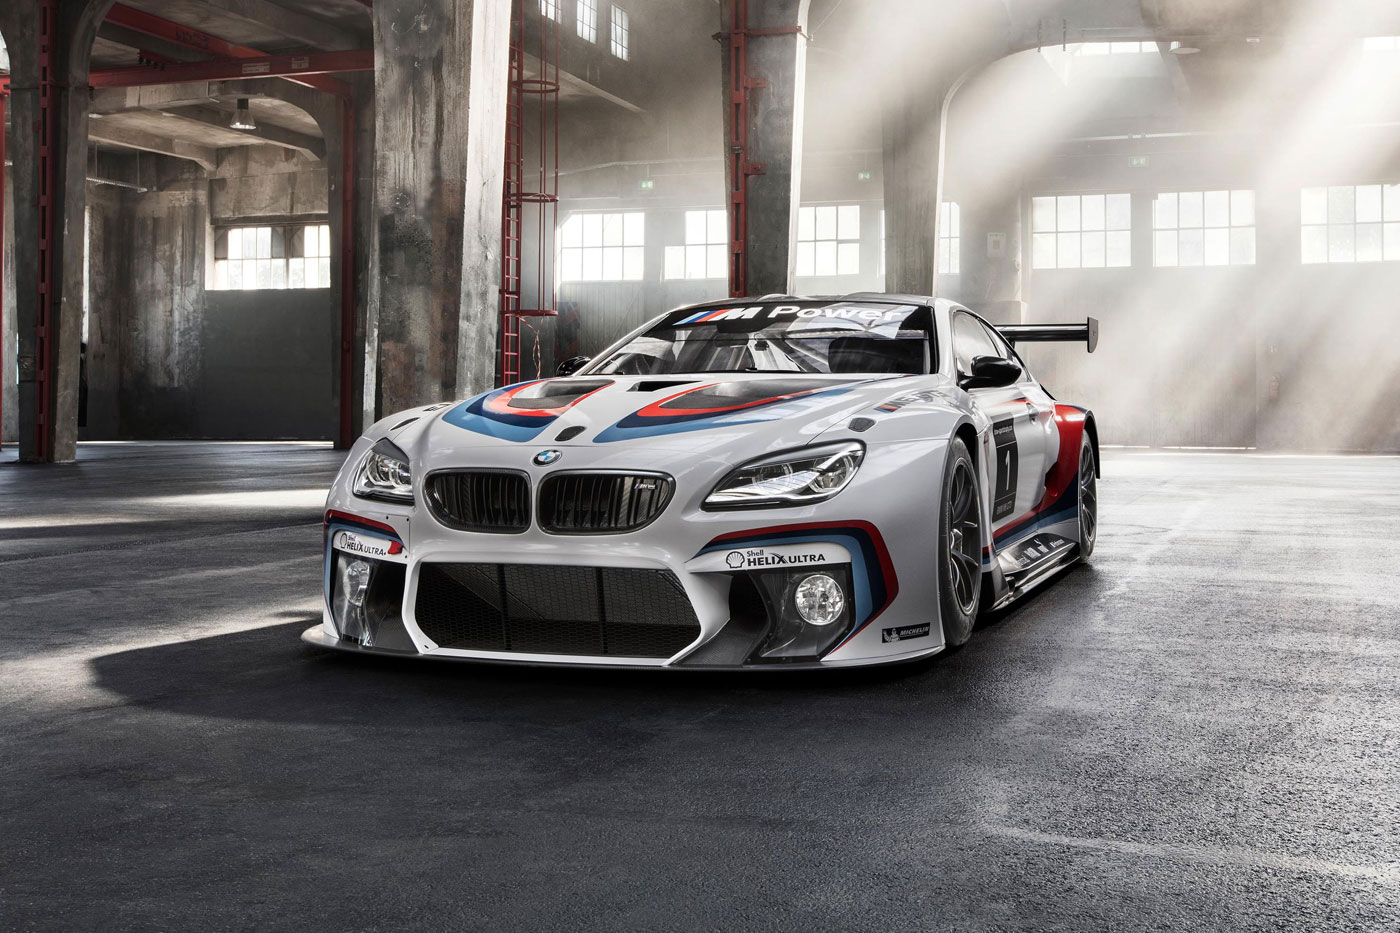 BMW is back in 2016